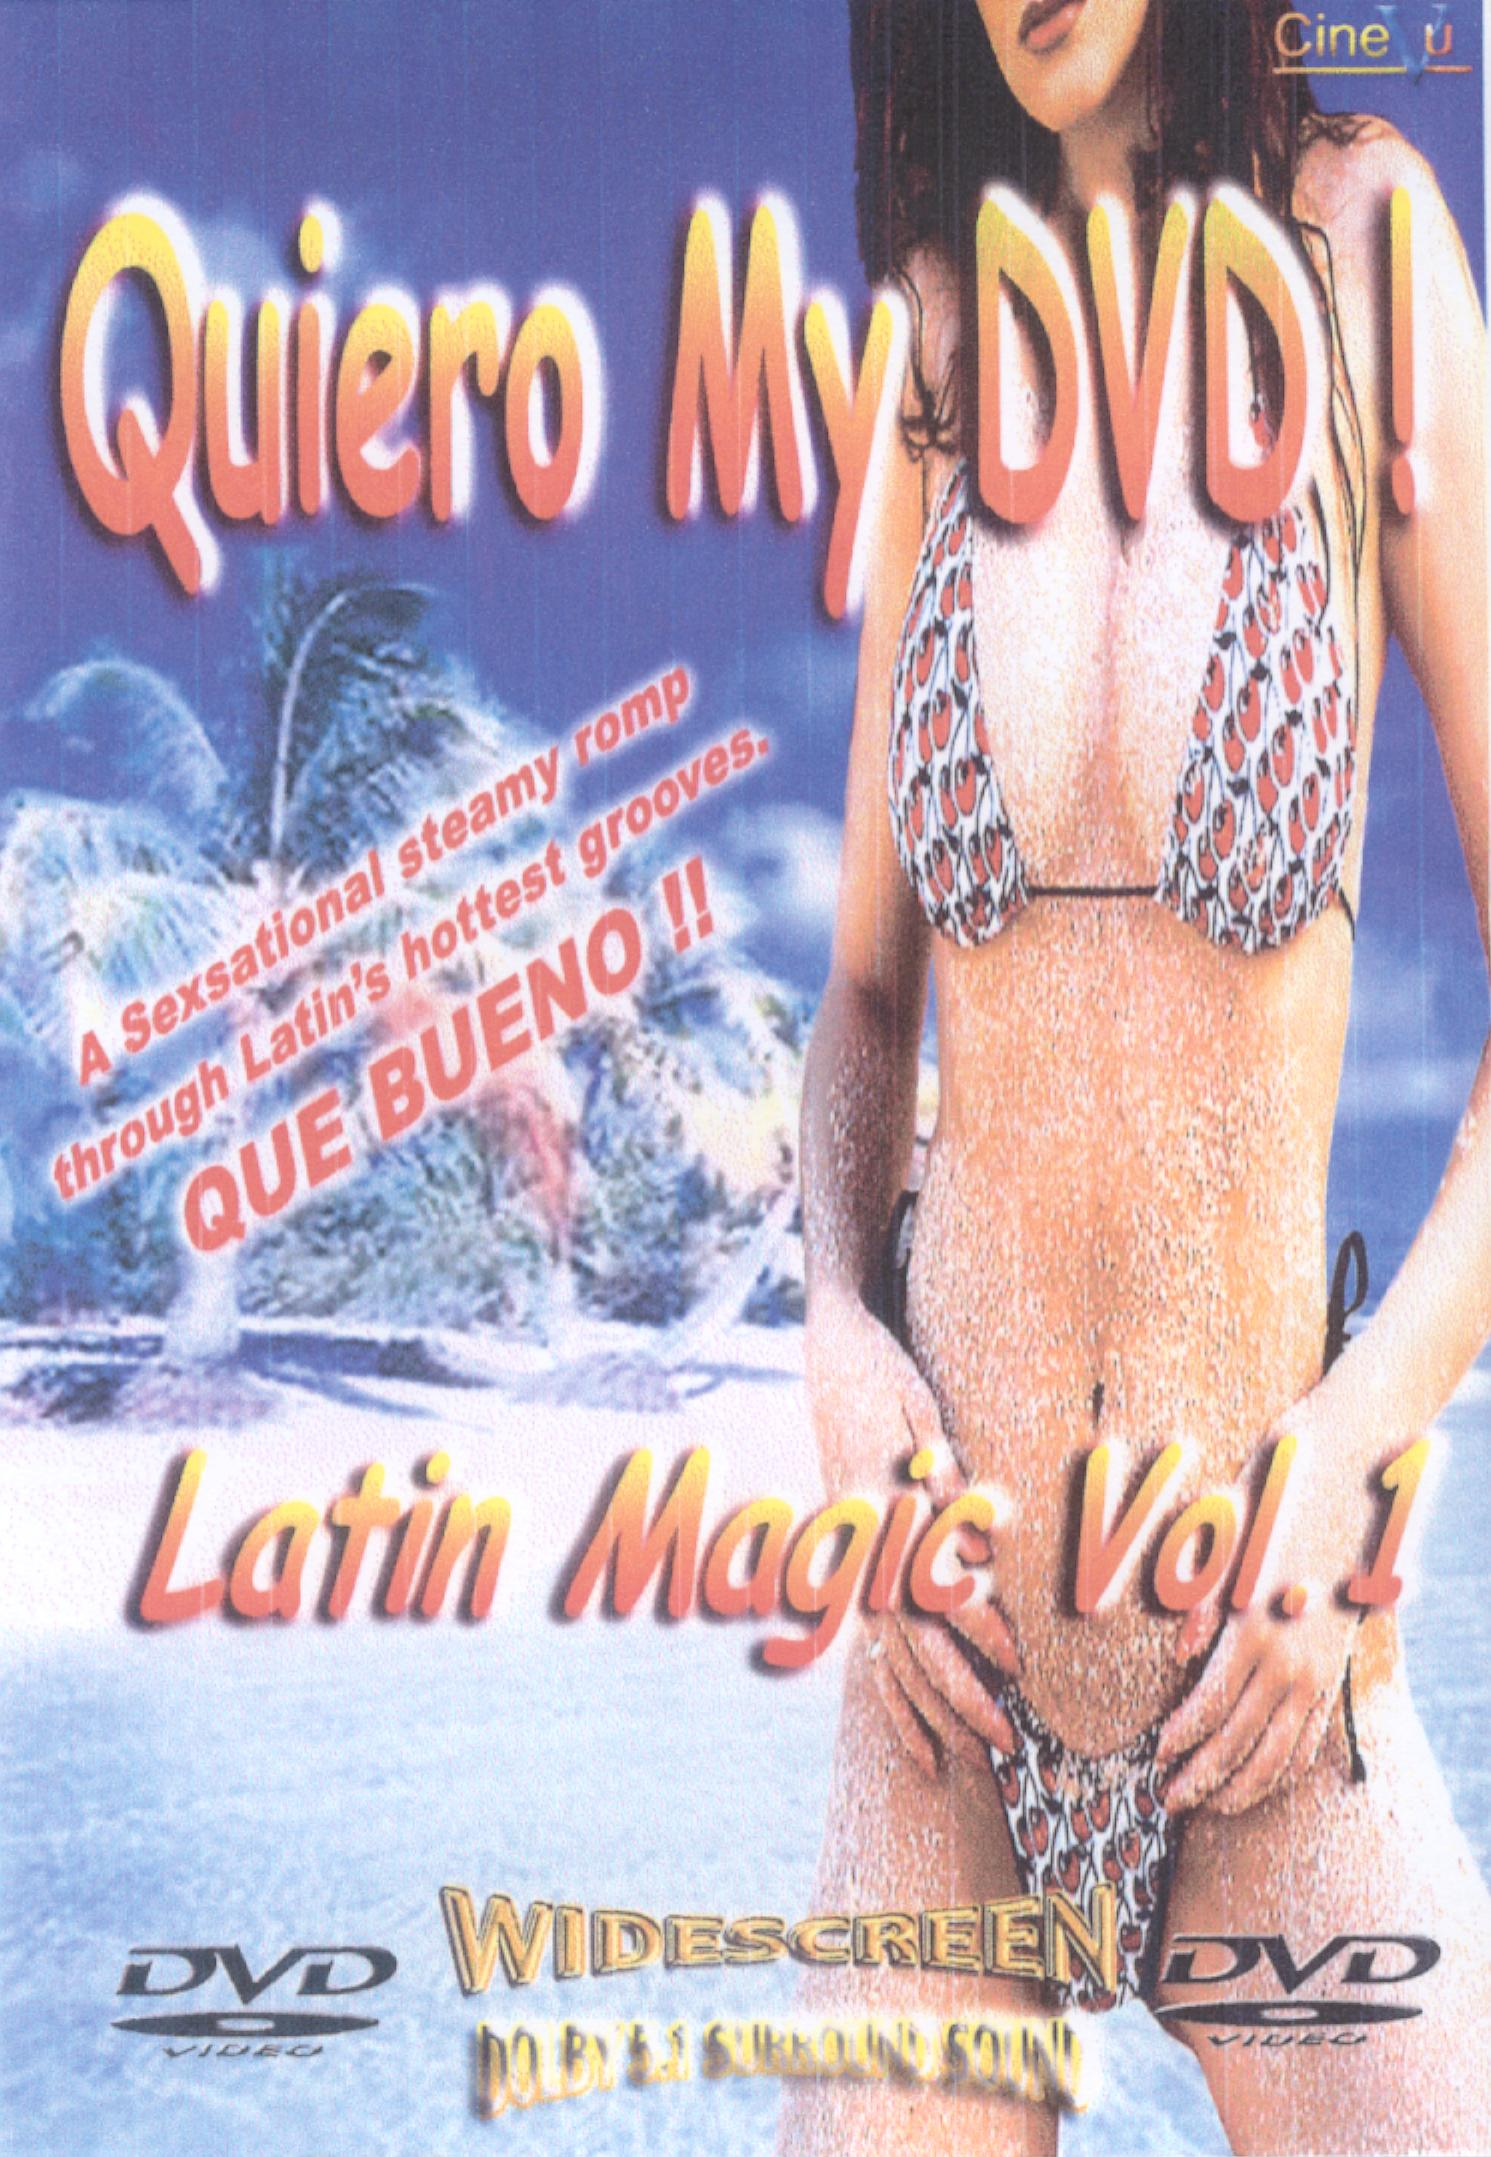 Quiero My DVD! Latin Magic, Vol. 1